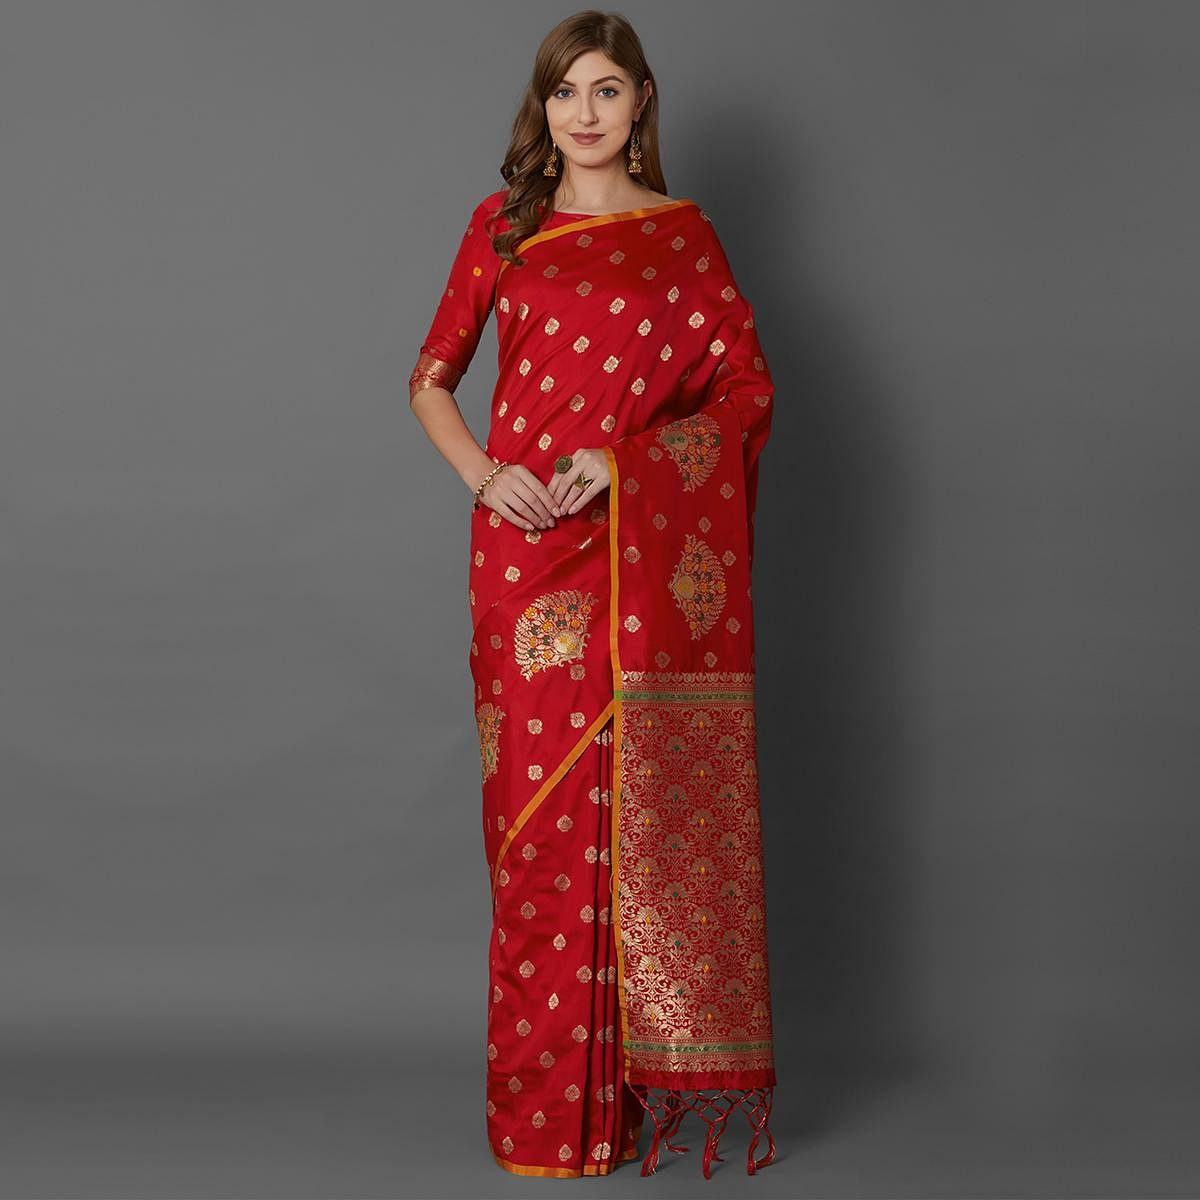 Sareemall Red Festive Wear Silk Blend Woven Border Saree With Unstitched Blouse